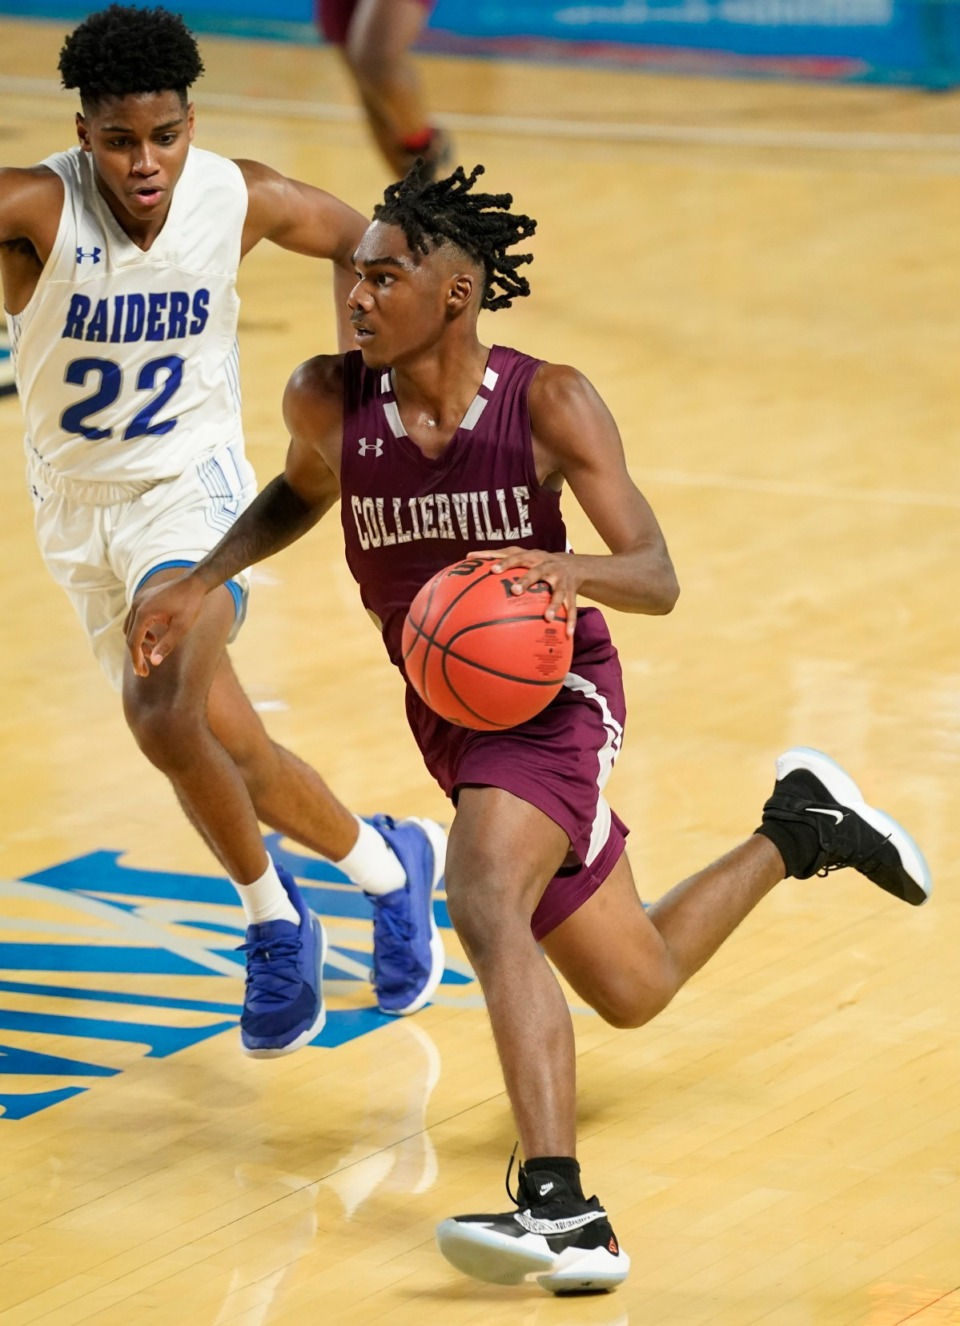 <strong>Collierville's Jordan Jenkins (4) moves the ball downcourt against Cleveland</strong>&nbsp;<strong>at the Division I Class AAA quarterfinal game on March 18, 2021, in Murfreesboro, Tennessee.</strong> (Larry McCormack/Special to The Daily Memphian)